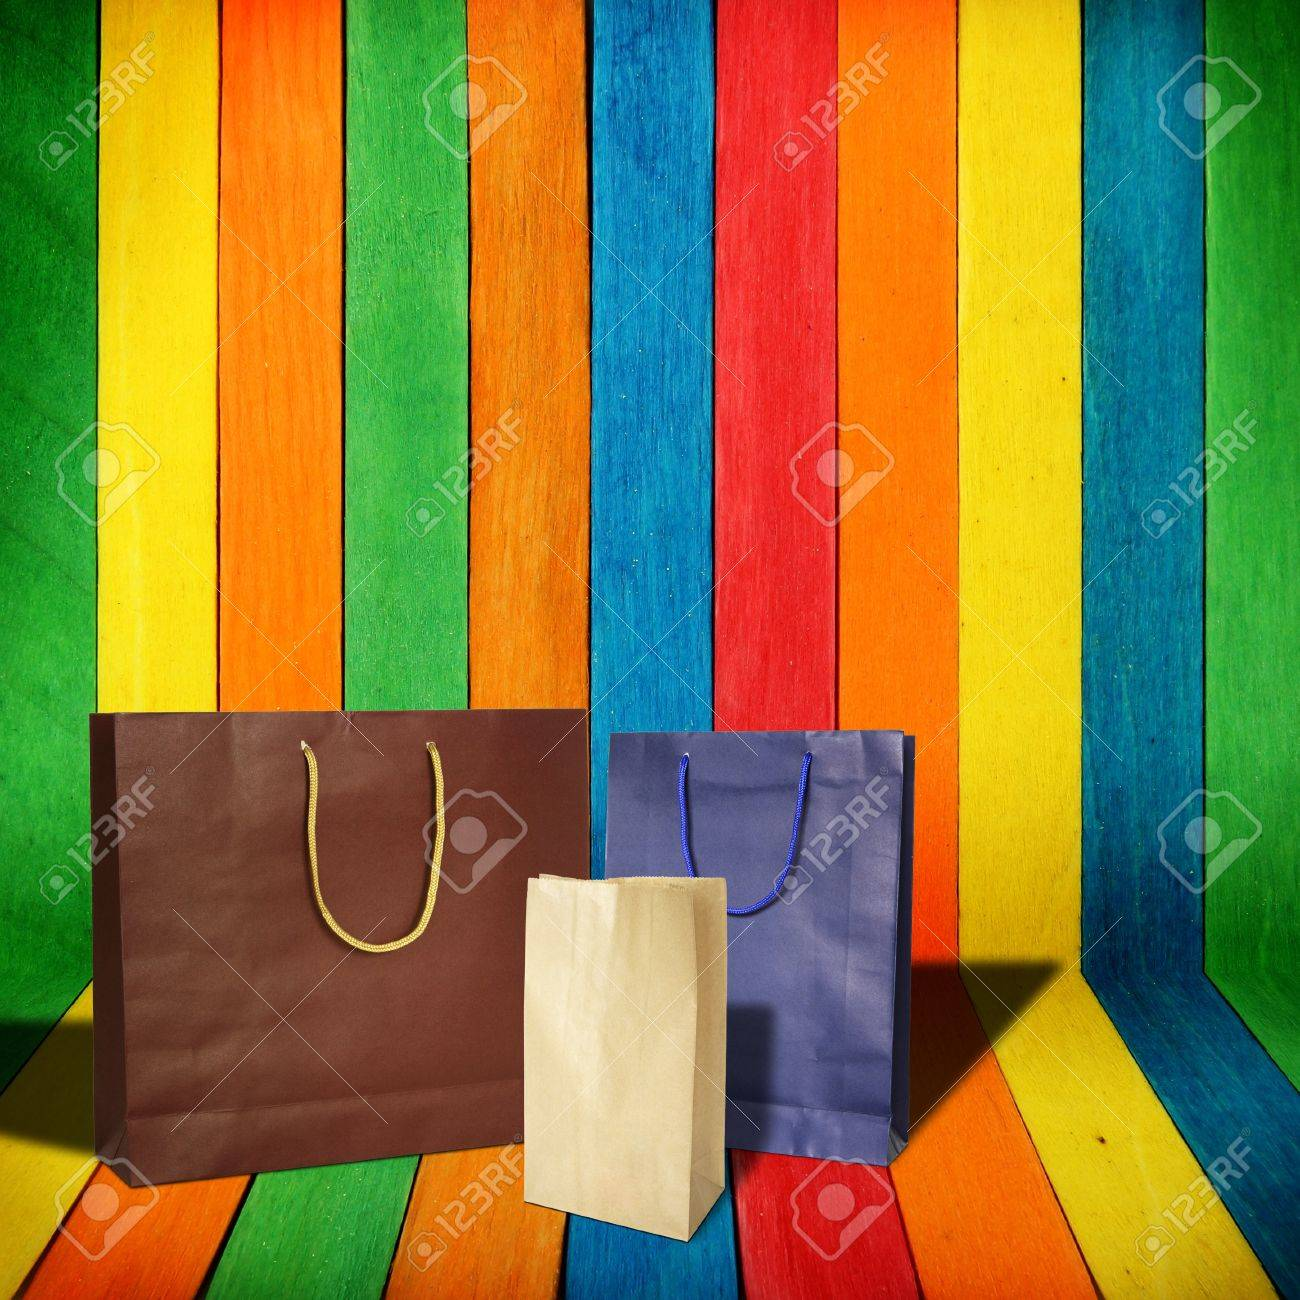 Shopping Bags On Colorful Wood Background Stock Photo, Picture And ...